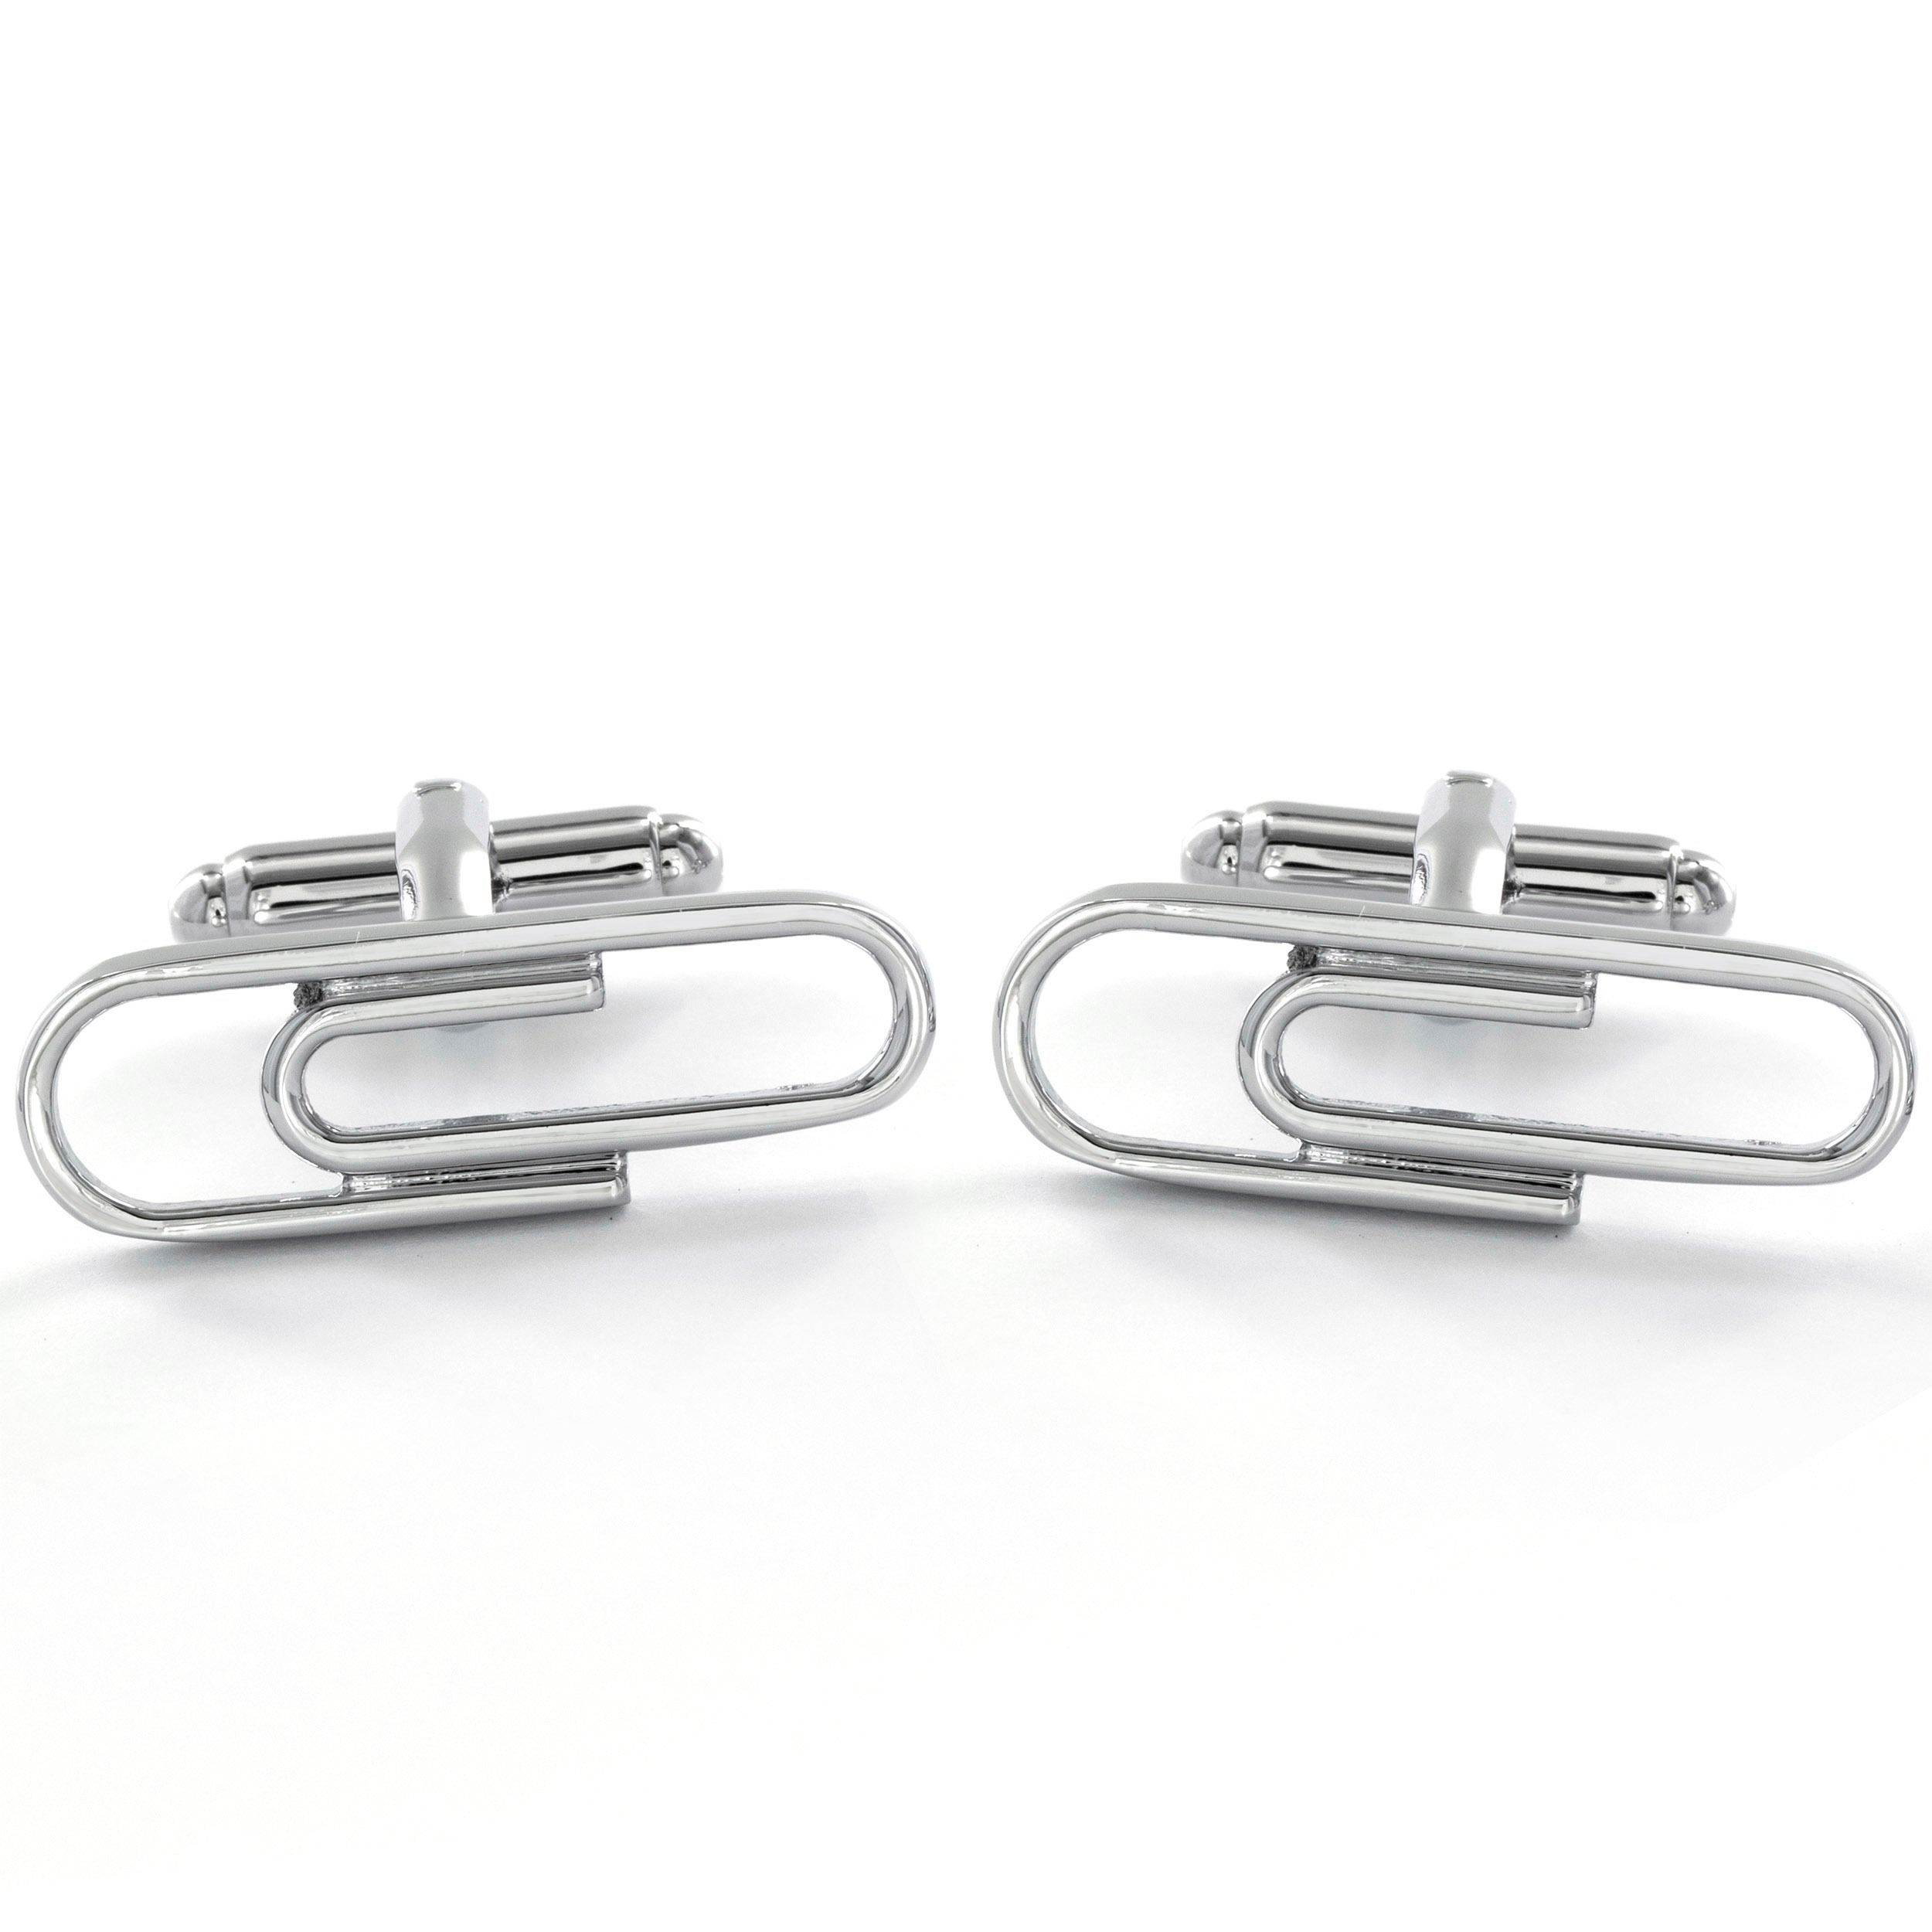 West Coast Jewelry High Polish Stainless Steel Men's Paperclip Cuff Links